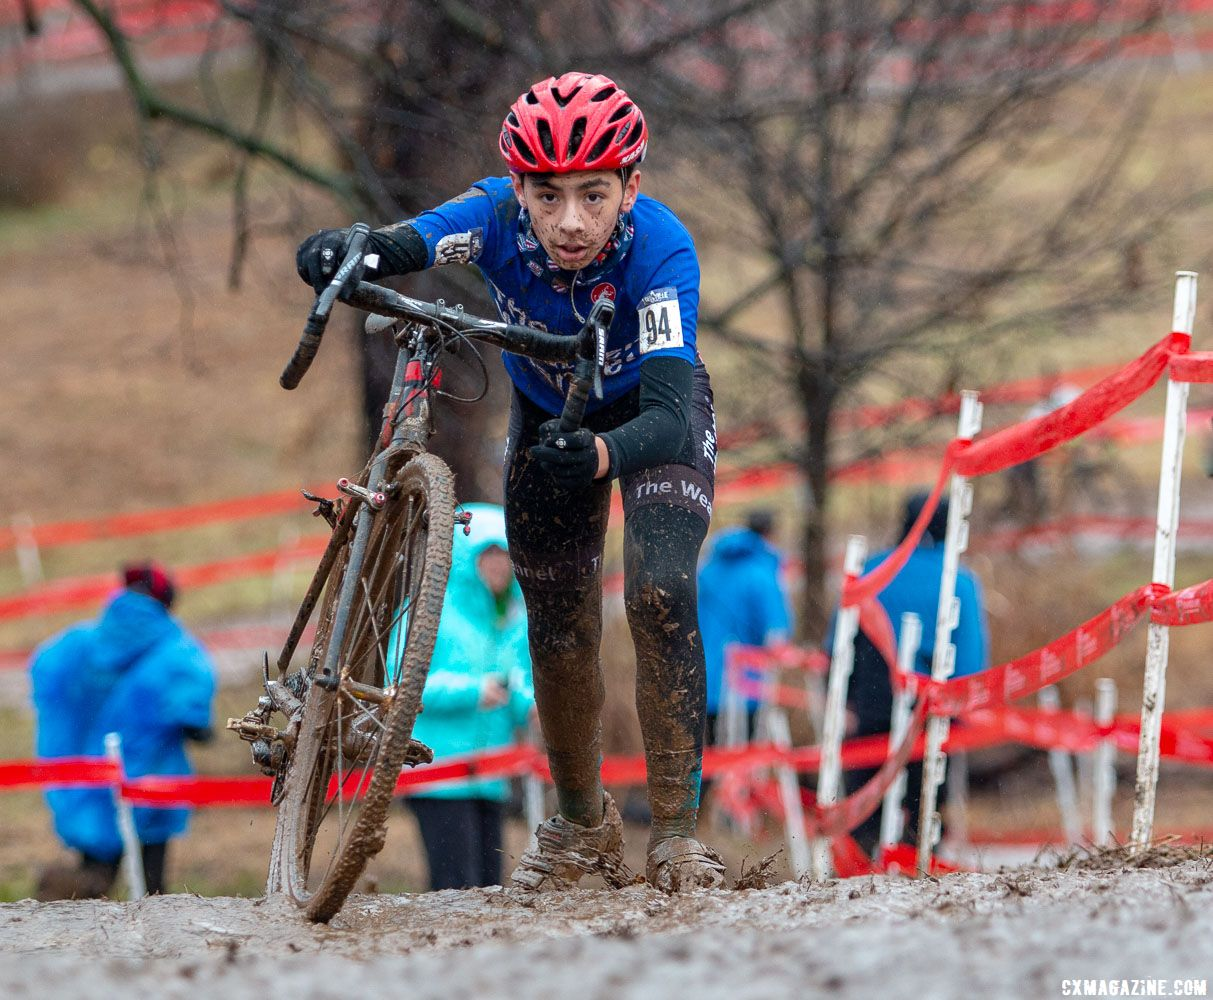 Conditions made the climbs unrideable. Junior Men 11-12. 2018 Cyclocross National Championships, Louisville, KY. © A. Yee / Cyclocross Magazine